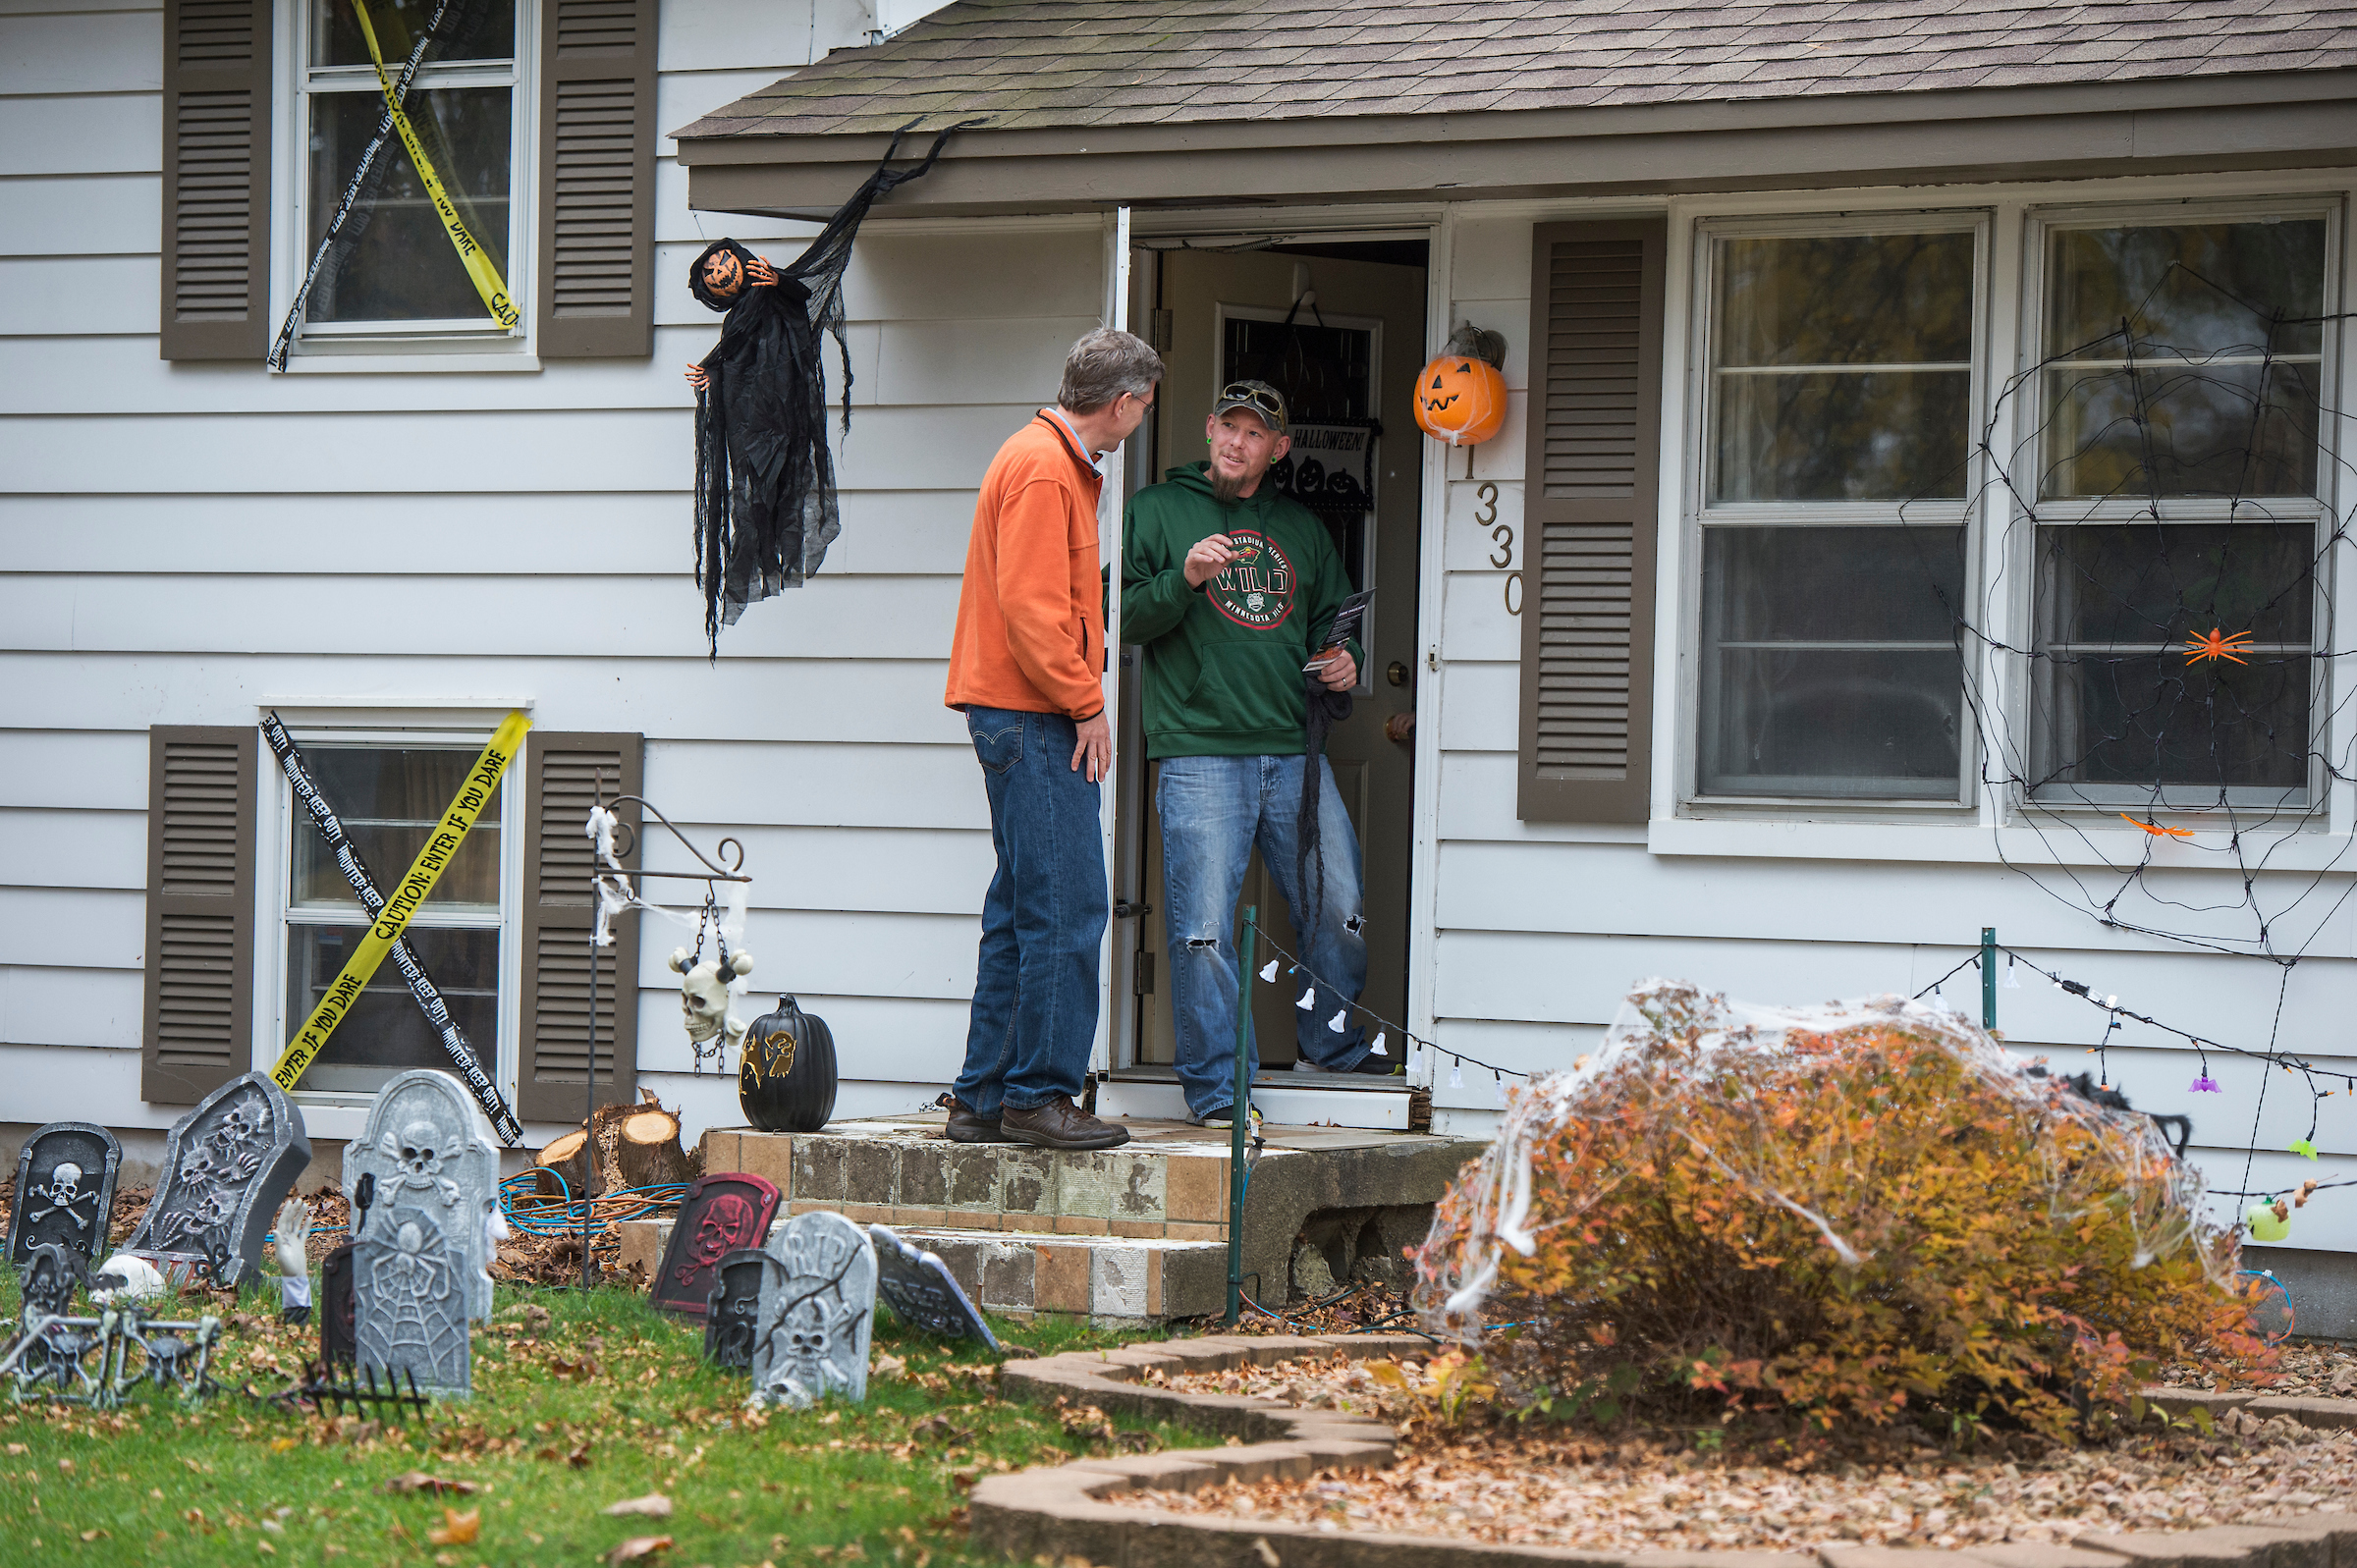 Rep. Erik Paulsen, R-Minn., greets voters while door-knocking in Coon Rapids, MN, October 29, 2016. Paulsen is running for reelection in Minnesota's 3rd Congressional District. (Photo By Tom Williams/CQ Roll Call)